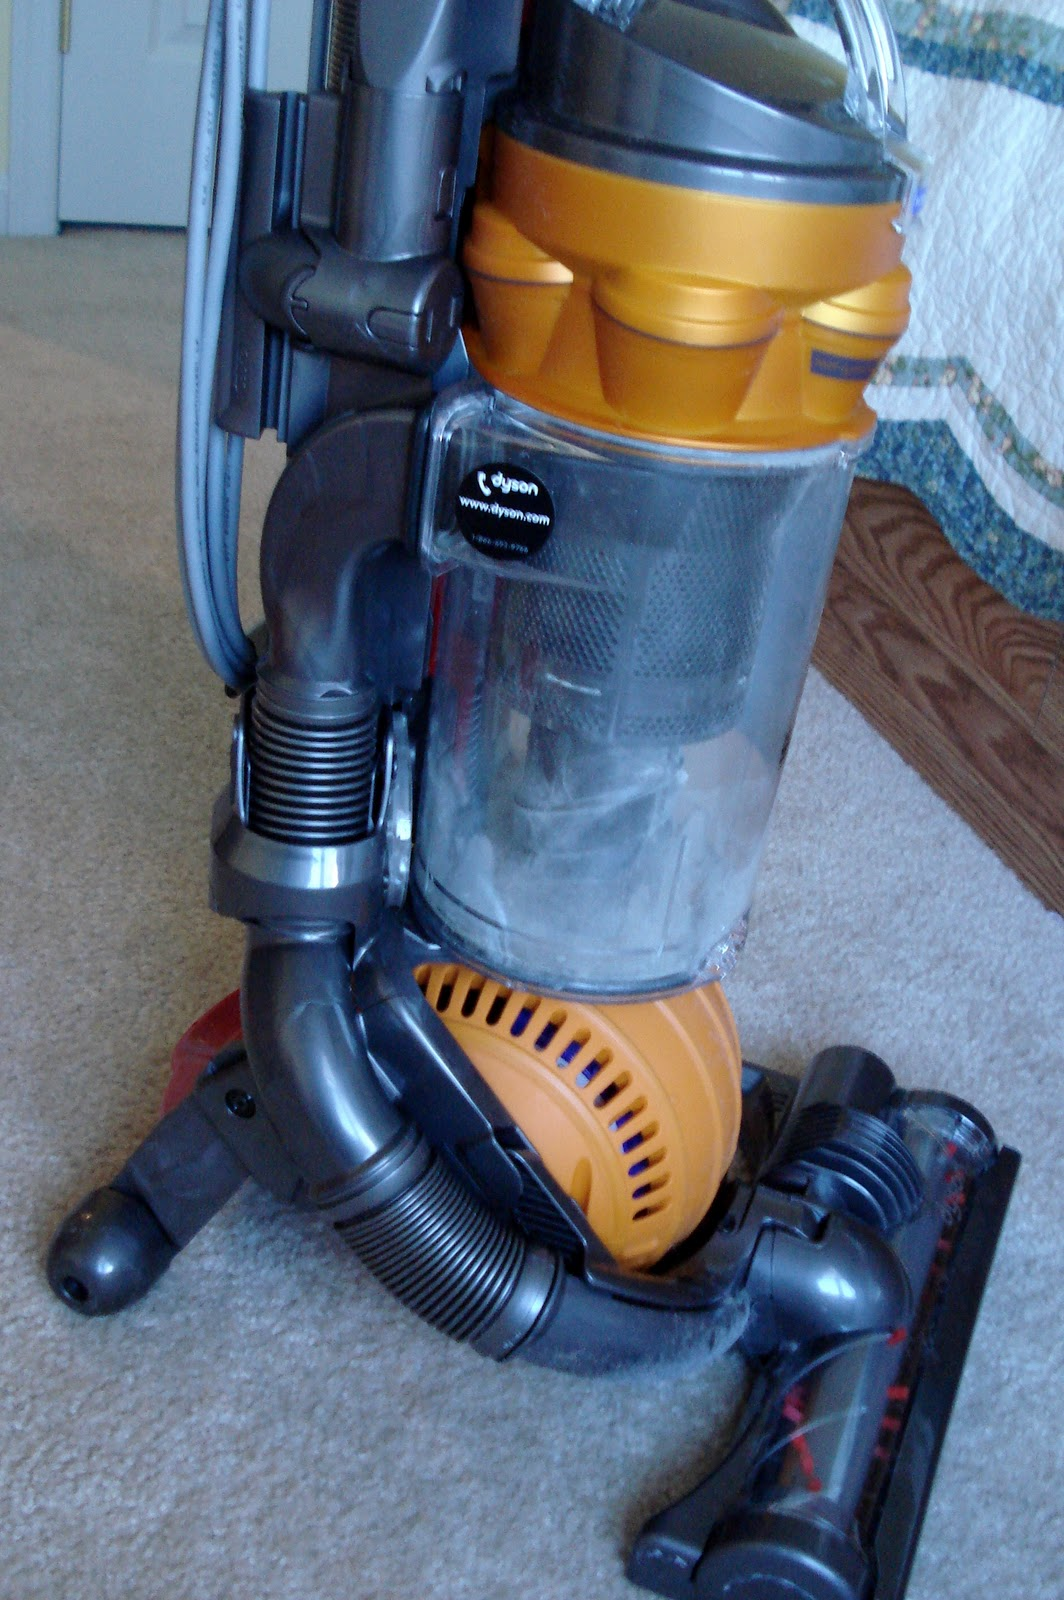 Thrifty Living: Amazon deal: Dyson DC25 Vacuum